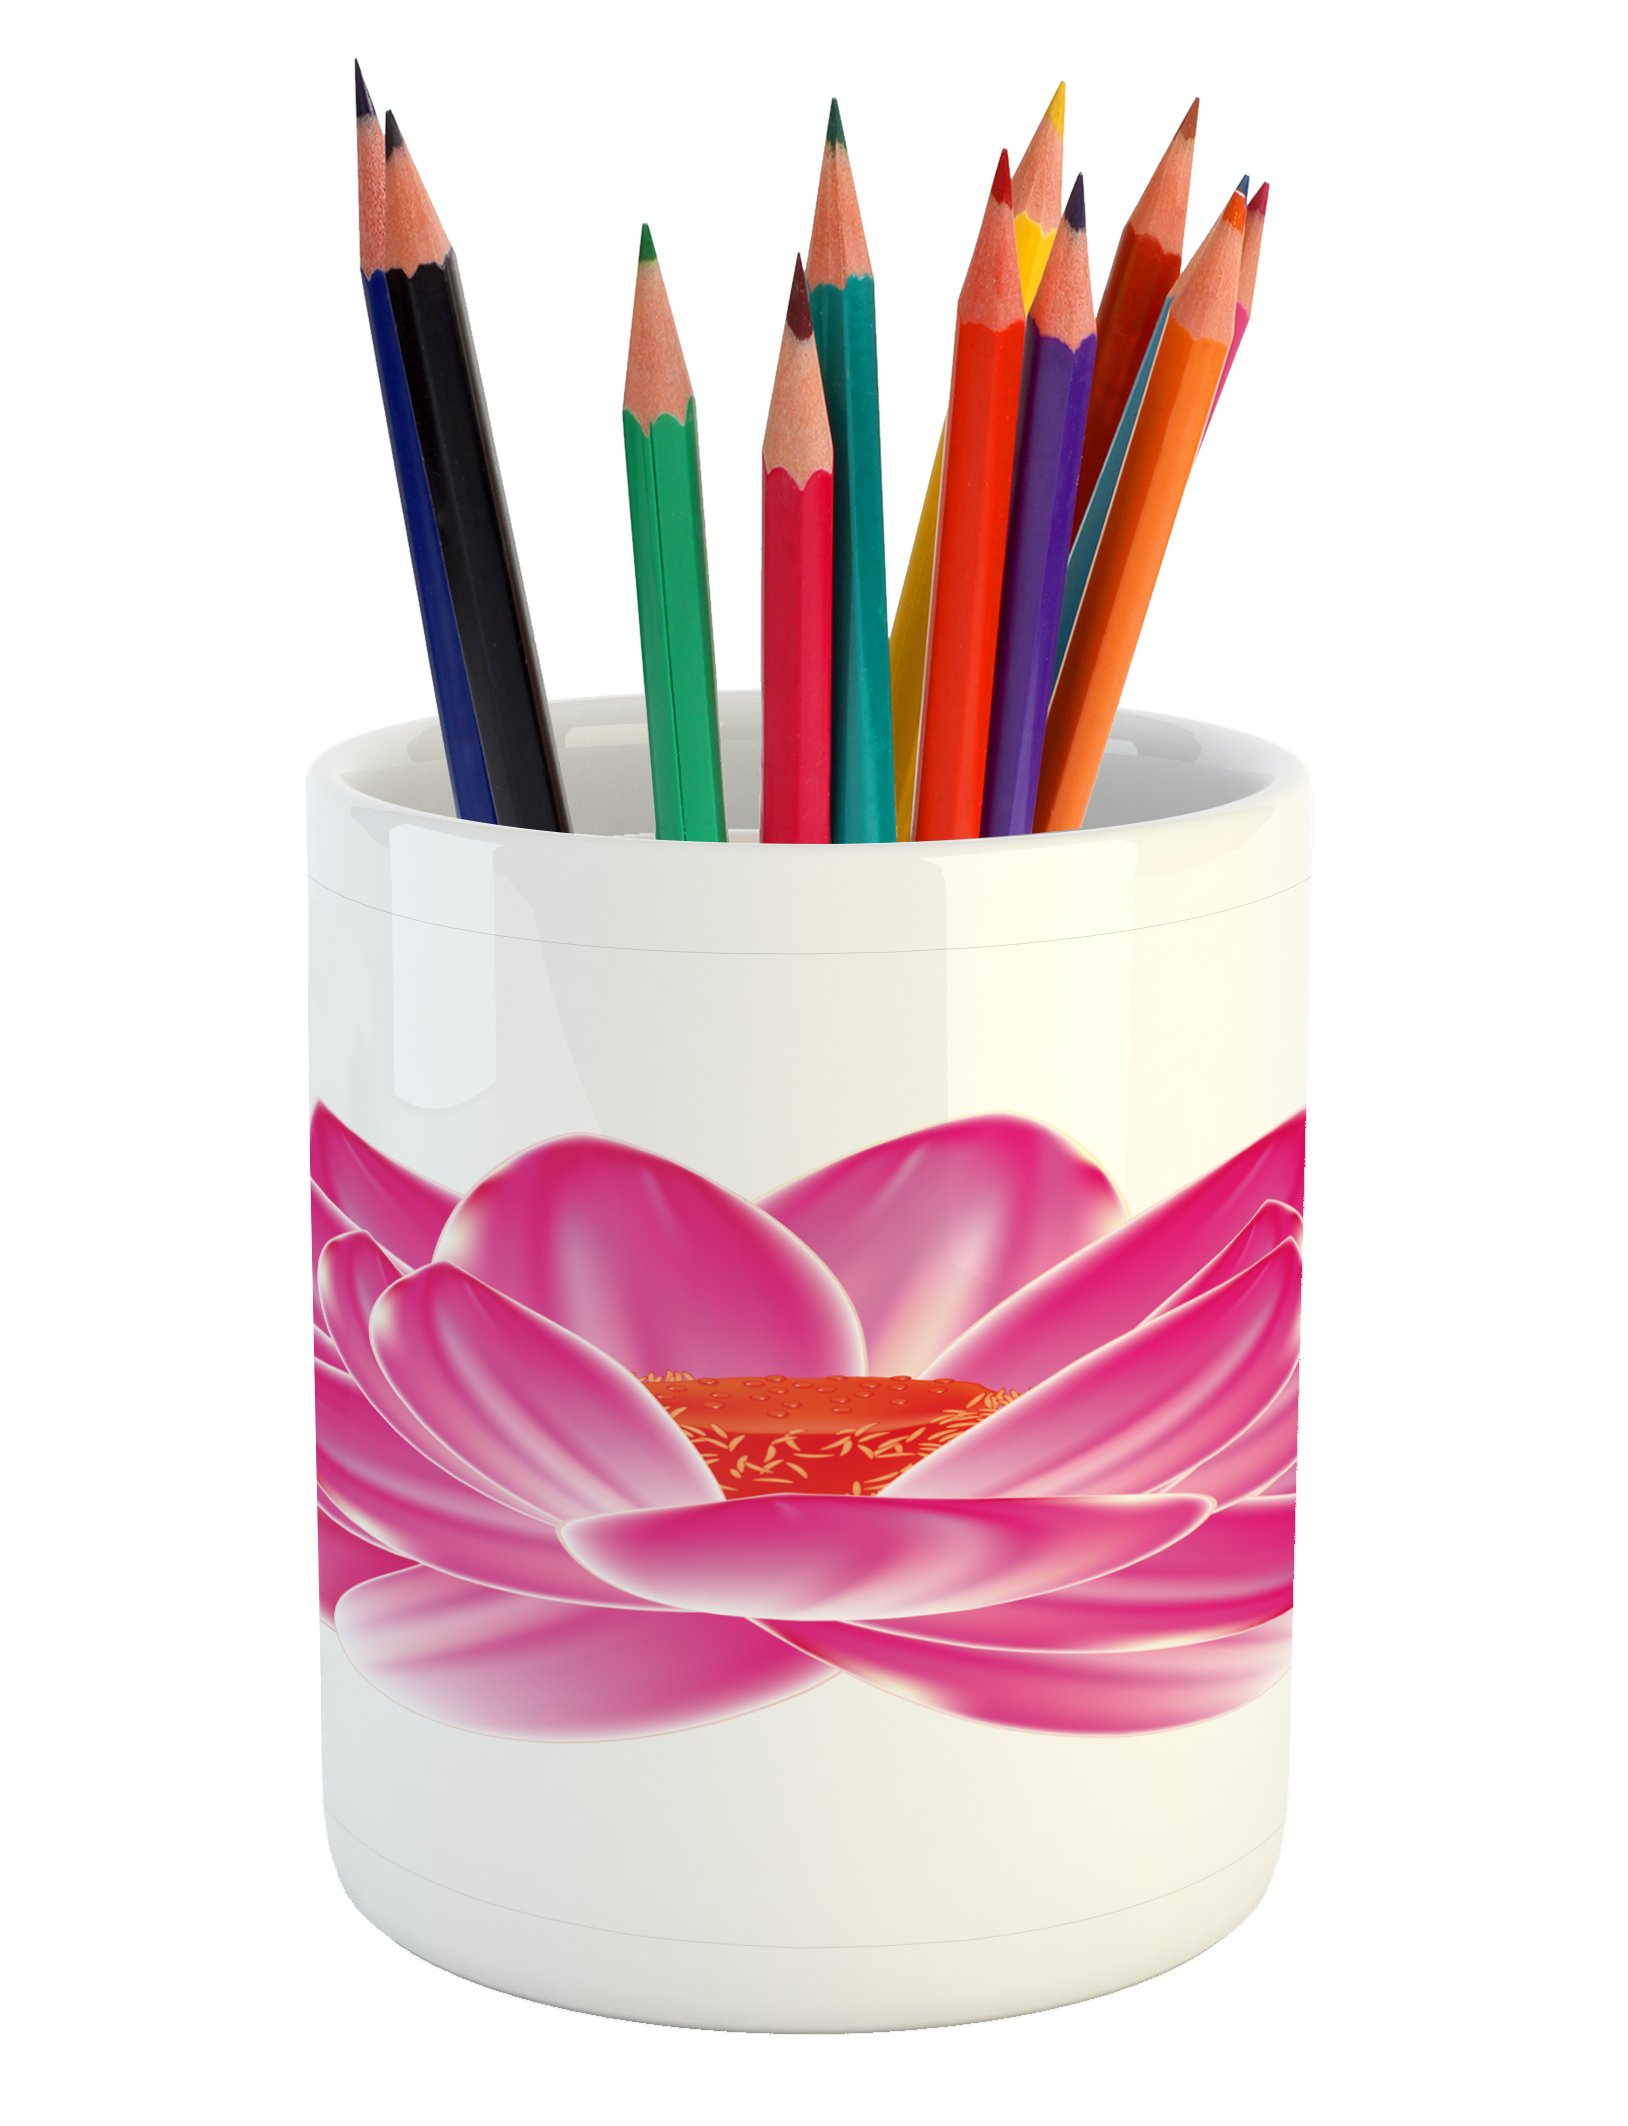 Lunarable Lotus Pencil Pen Holder, Vibrant Lotus Flower Pattern Spa Zen Yoga Asian Balance Energy Lifestyle Artsy Image, Printed Ceramic Pencil Pen Holder for Desk Office Accessory, Magenta Red